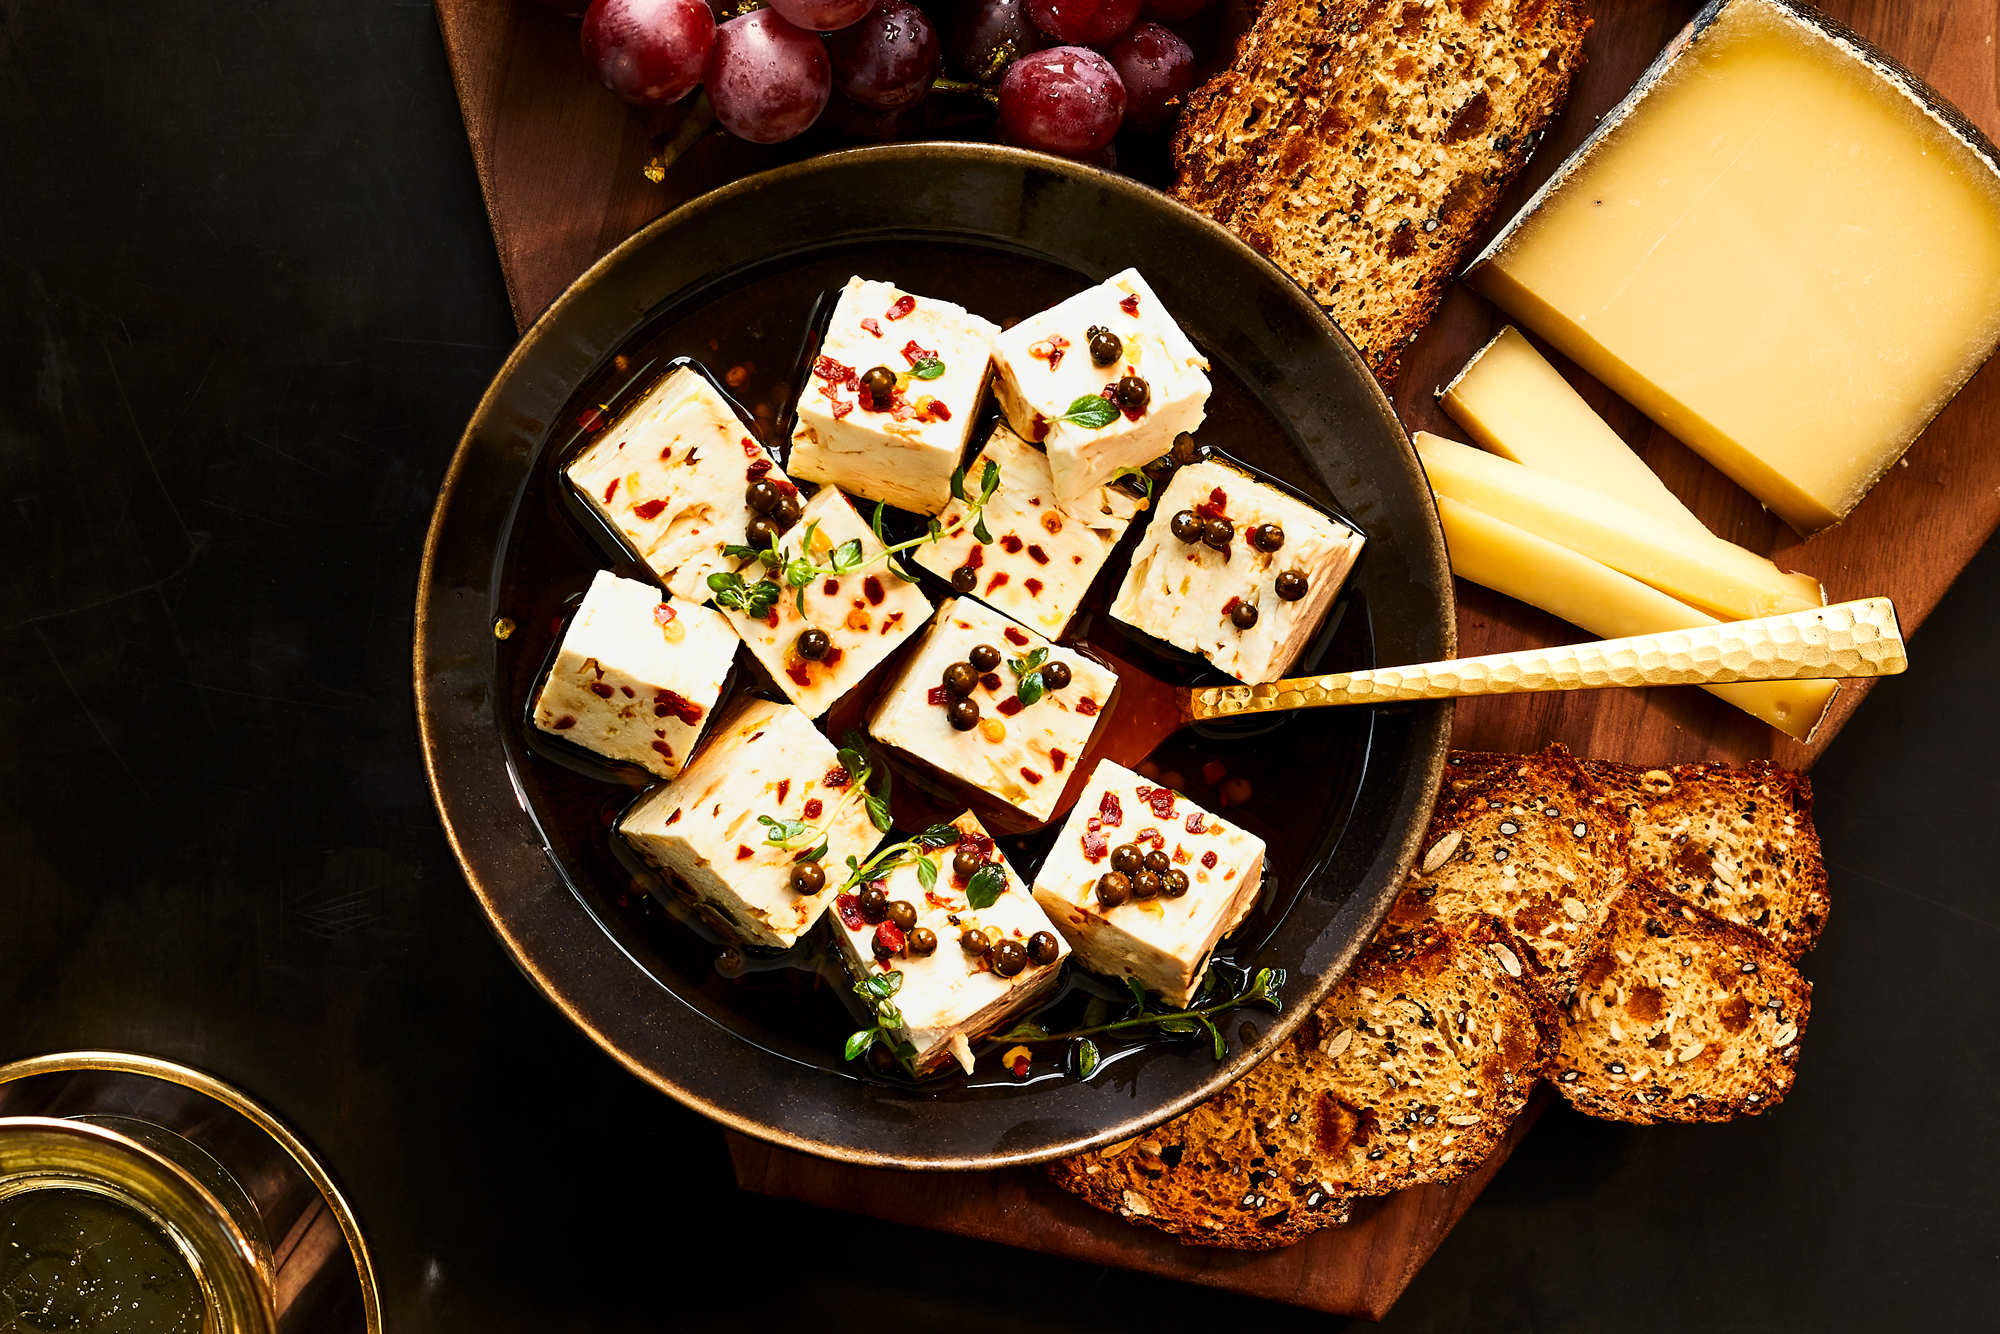 Green Peppercorn Marinated Feta